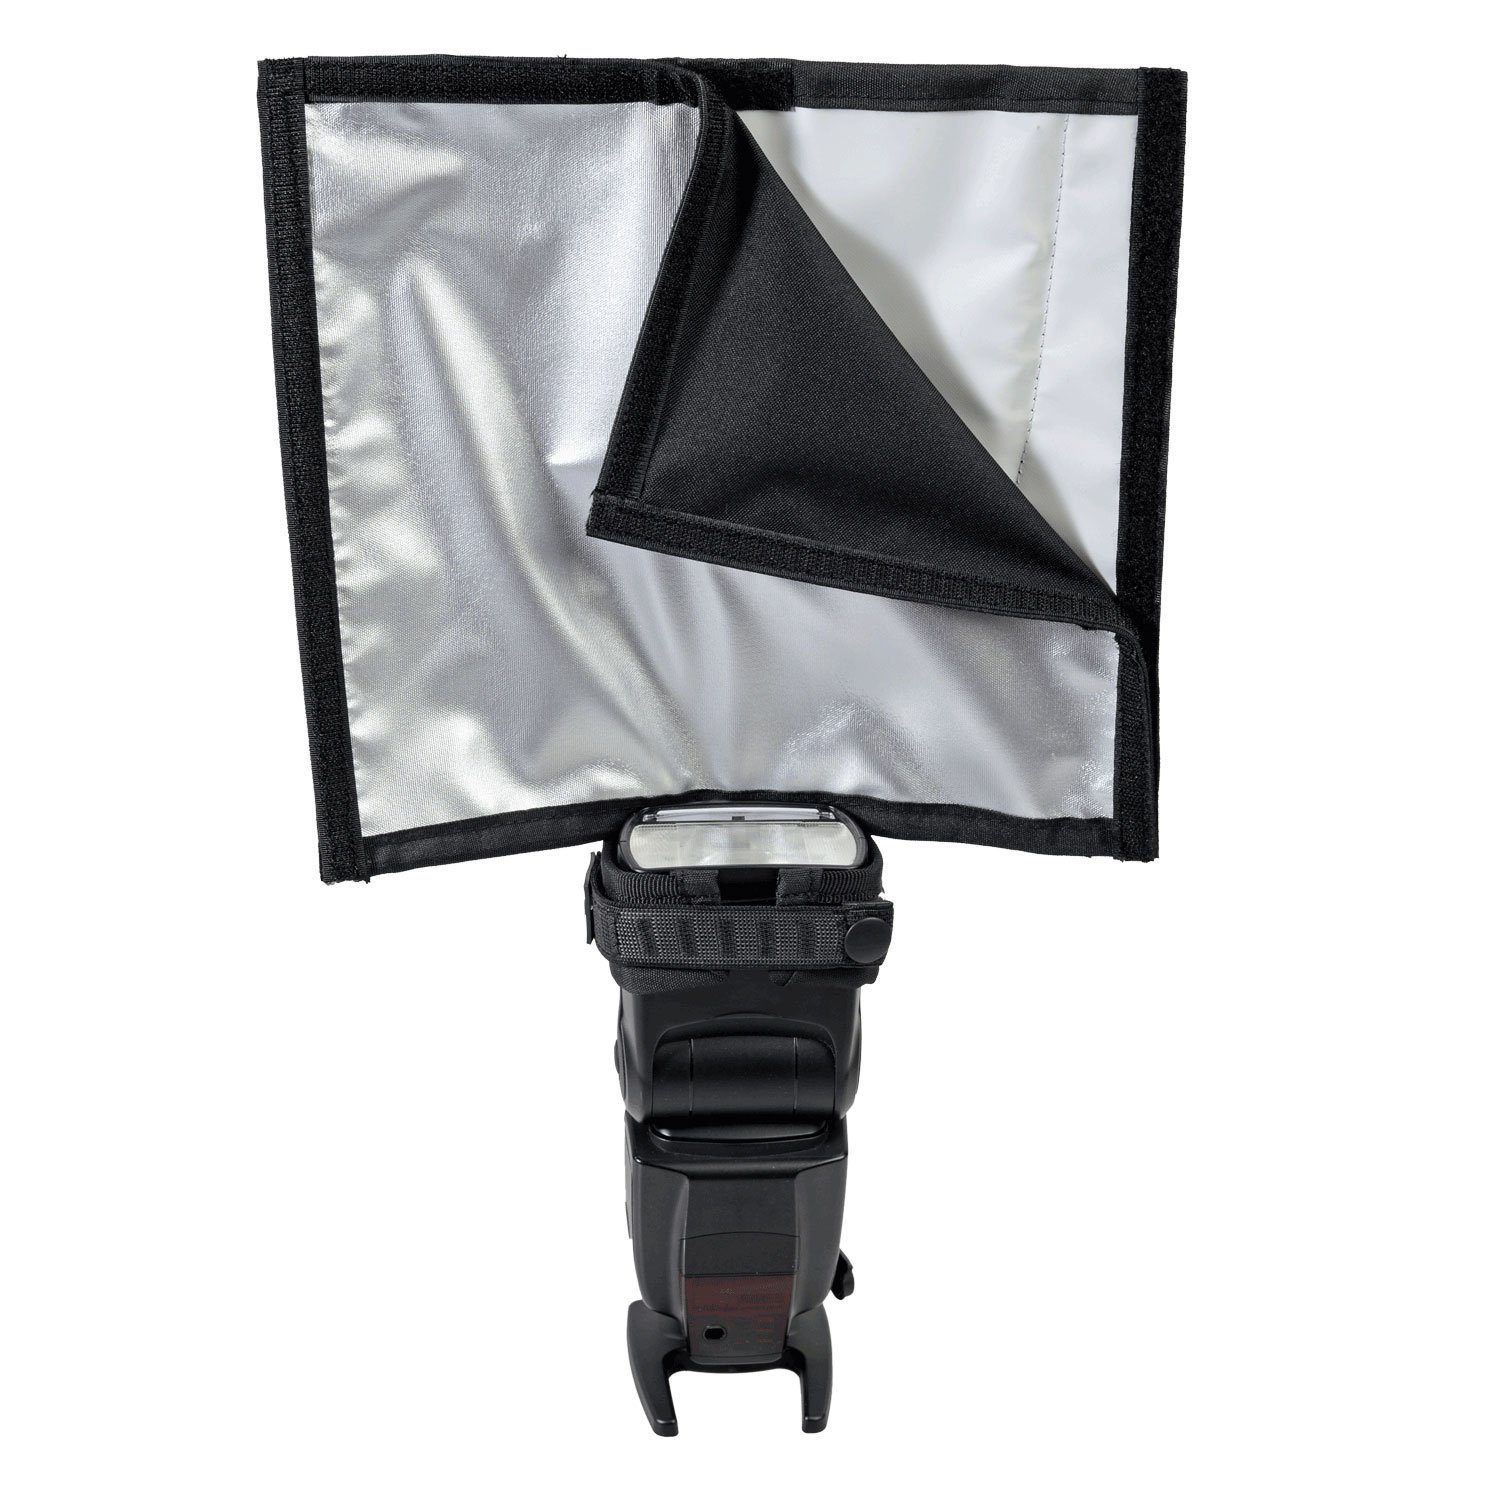 Rogue Photographic Design Rogue FlashBender 2 (Second Generation) - LARGE Soft Box Kit (Black/White) by Rogue Photographic Design (Image #4)